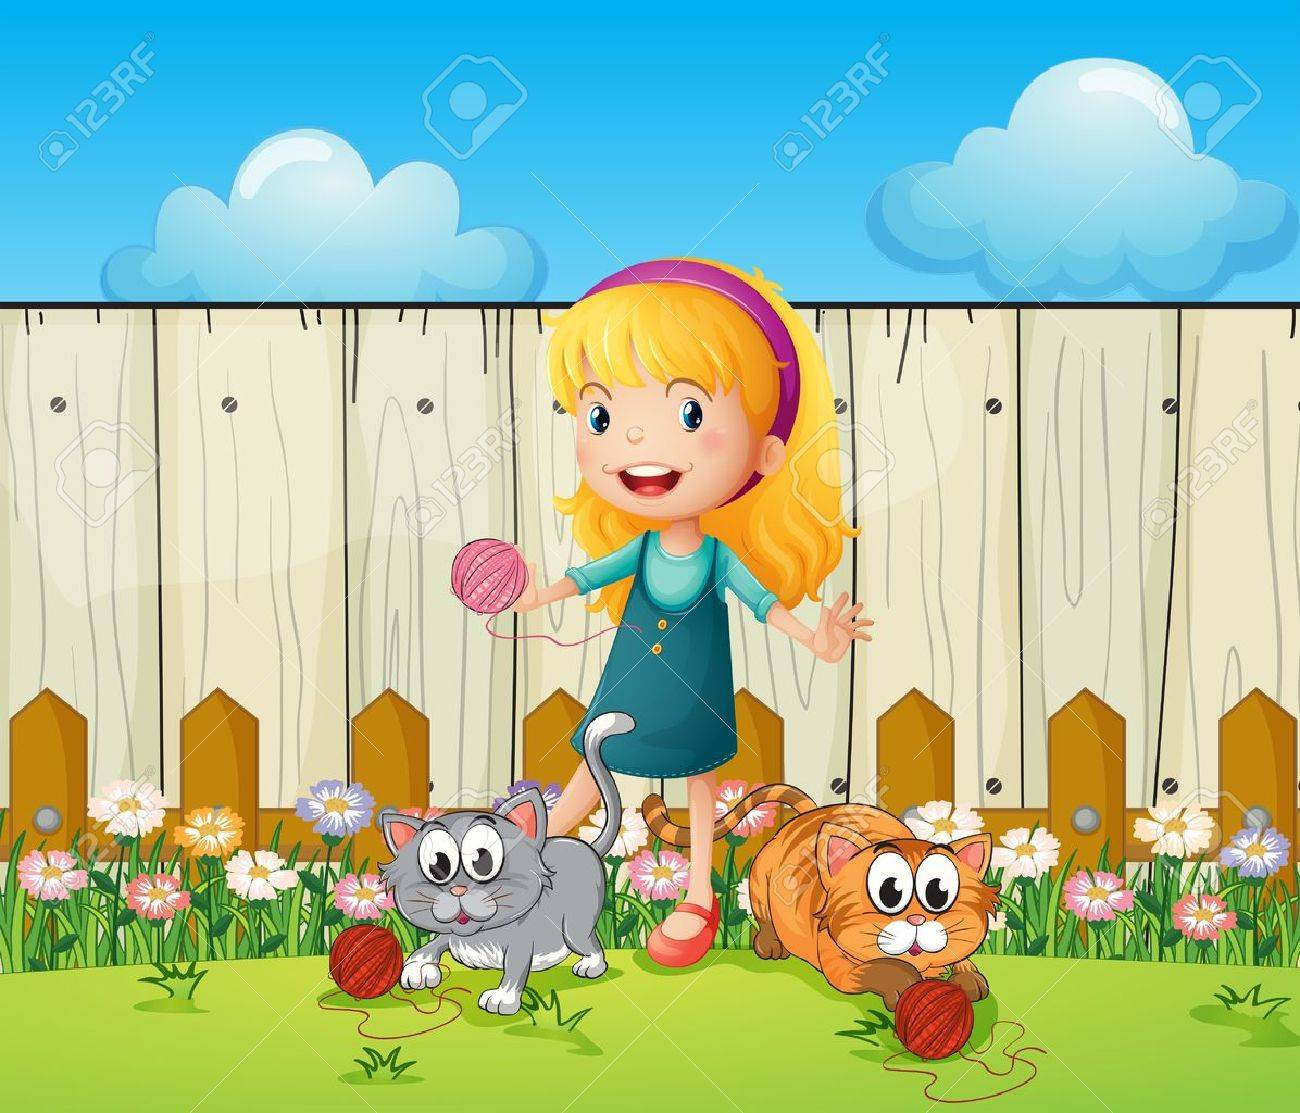 Illustration of a girl playing with her cats inside the fence Stock Vector - 18052954